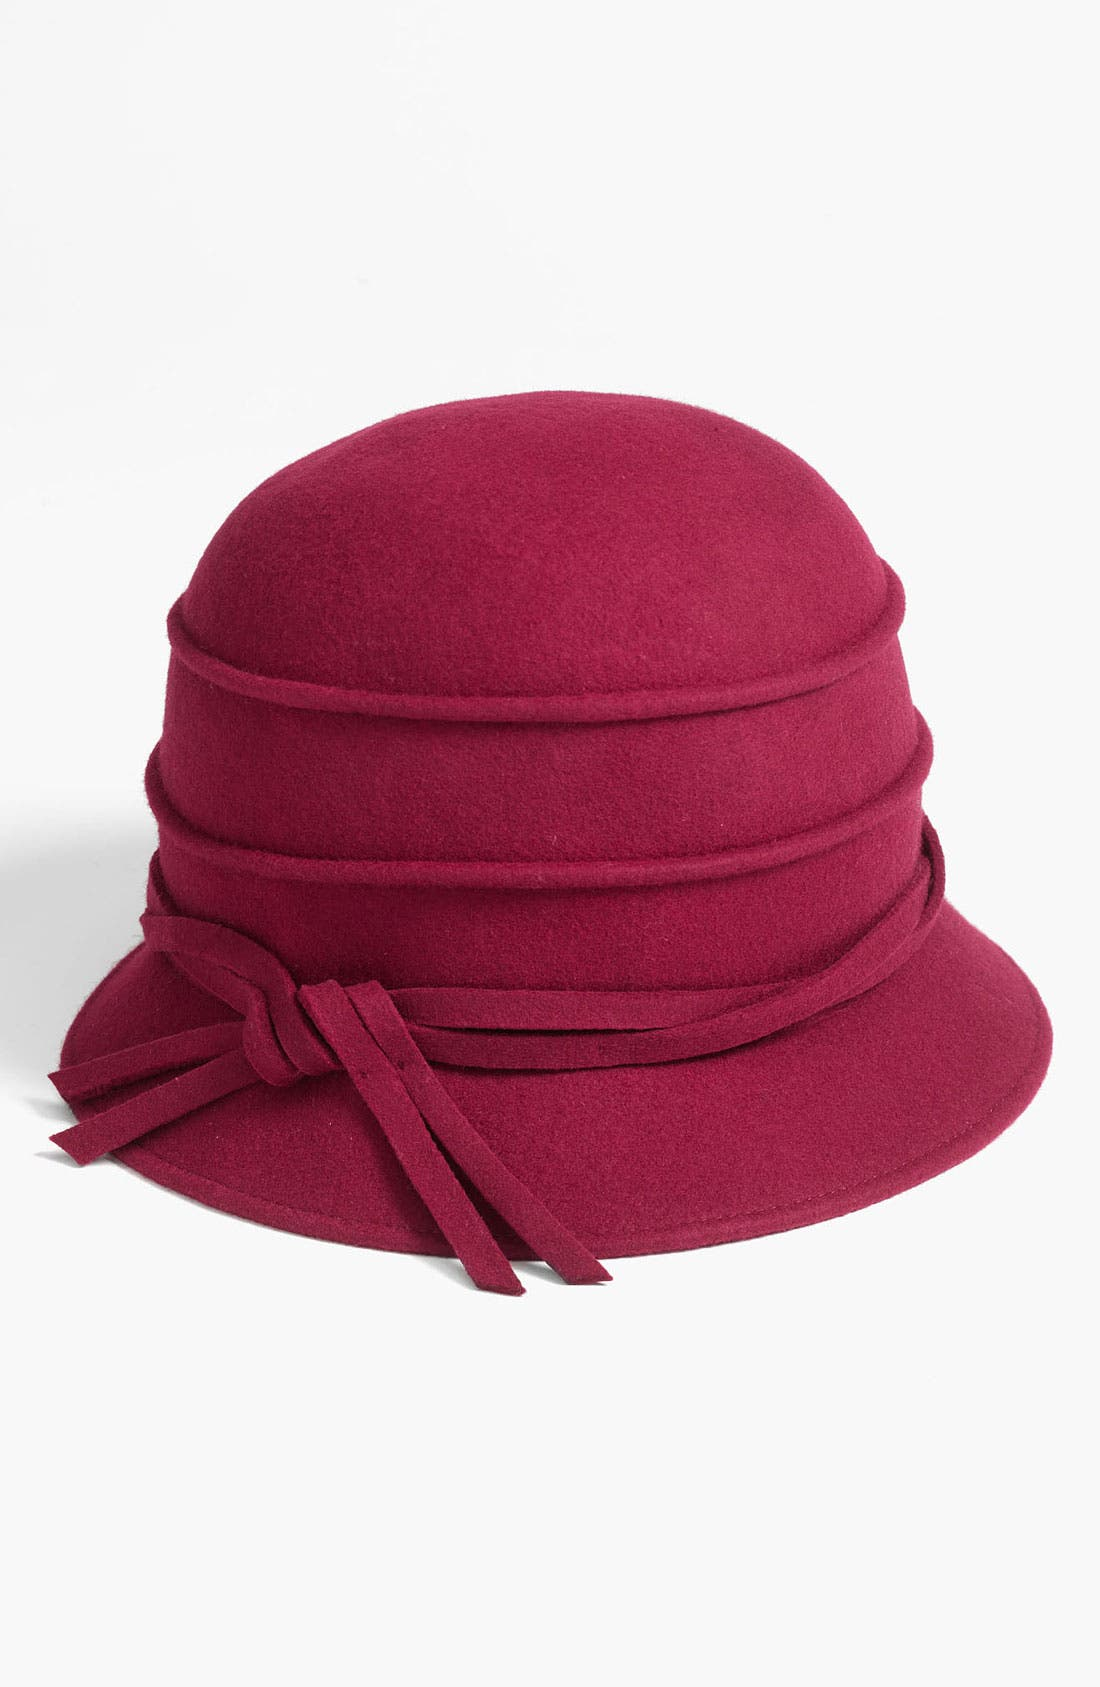 Alternate Image 1 Selected - Nordstrom Wool Cloche